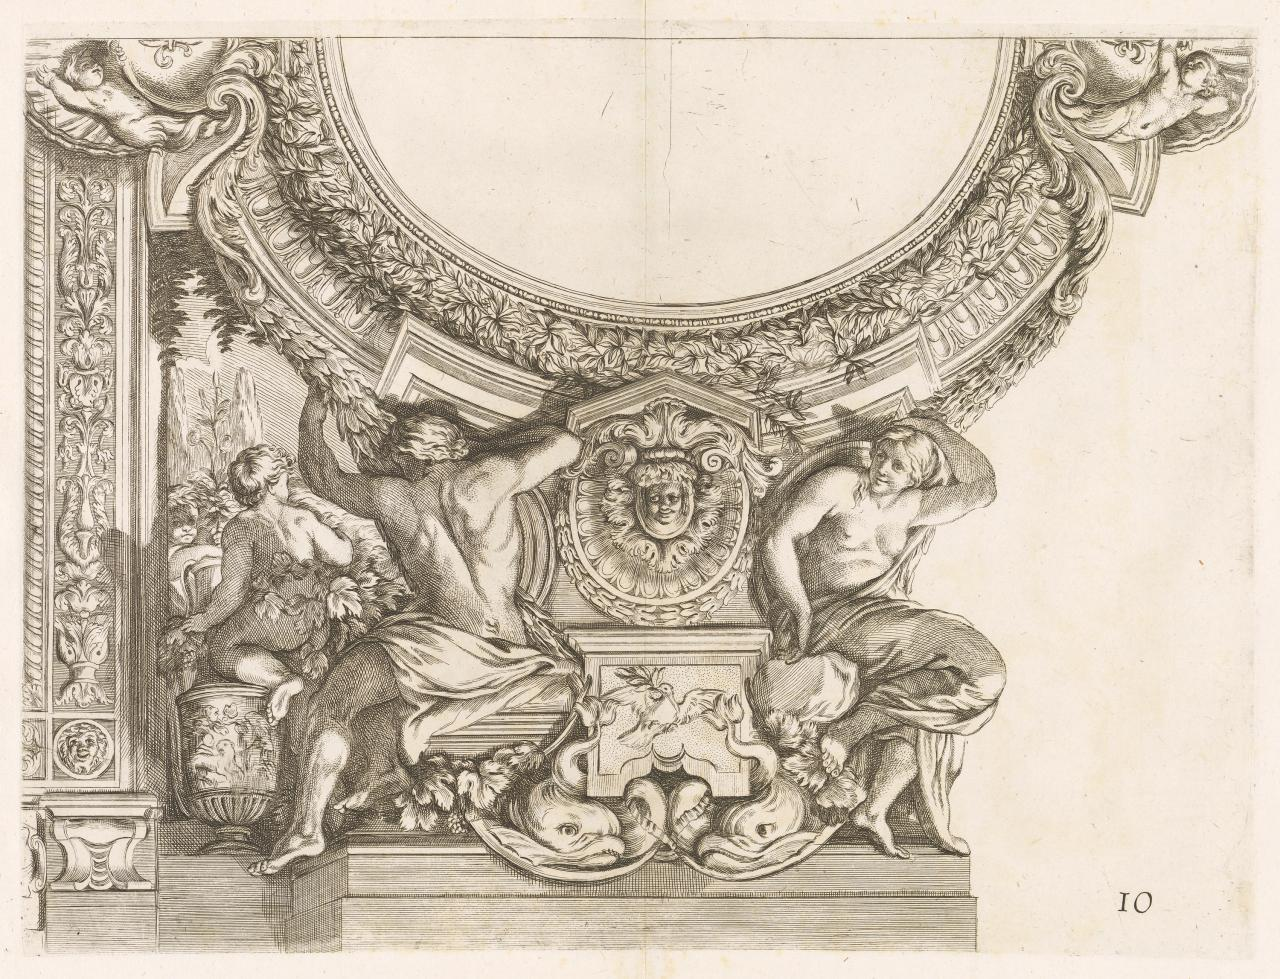 Composition with stucco ornaments of a man and a woman